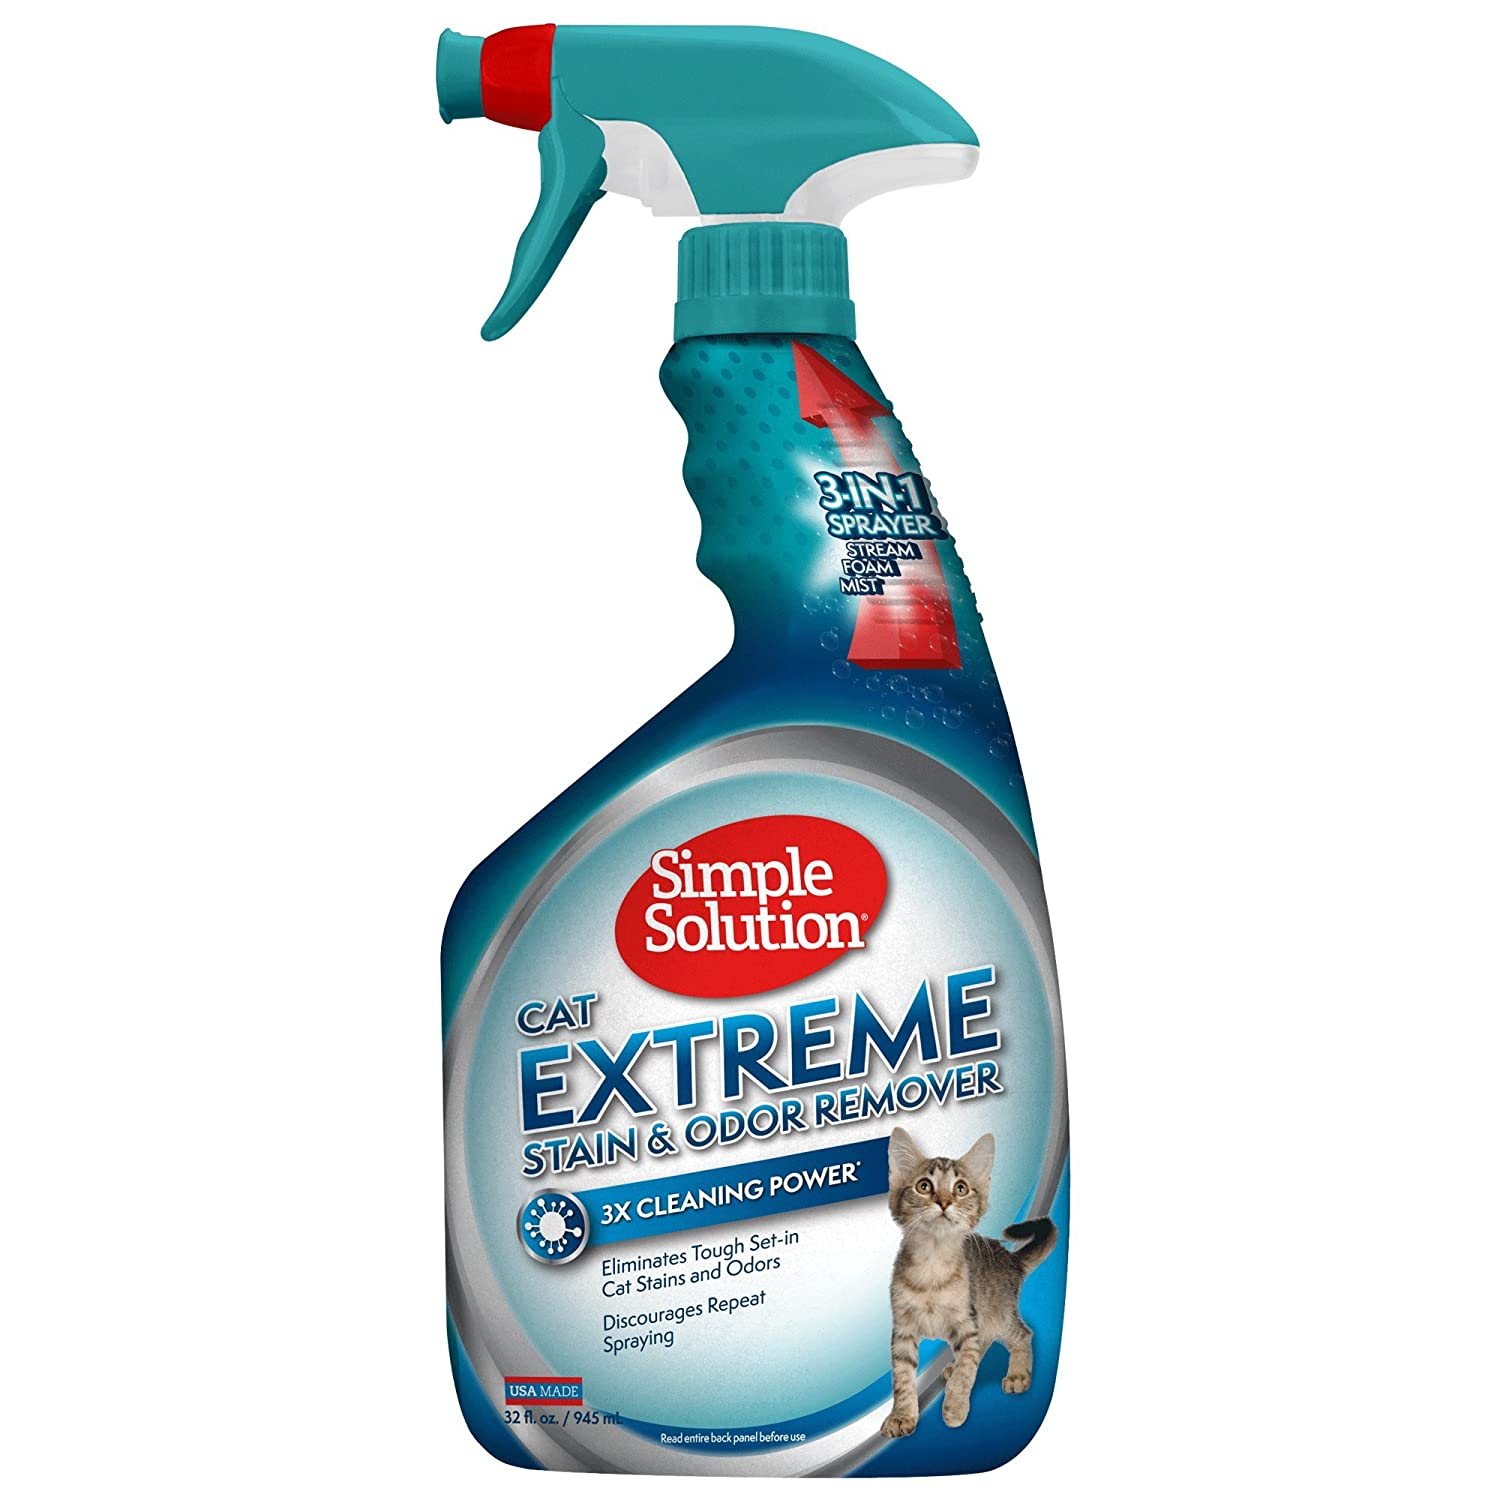 Simple Solution Cat Stain and Odor Remover | Pro-Bacteria and Enzyme Formula | Eliminate Tough Cat Stains and Odors